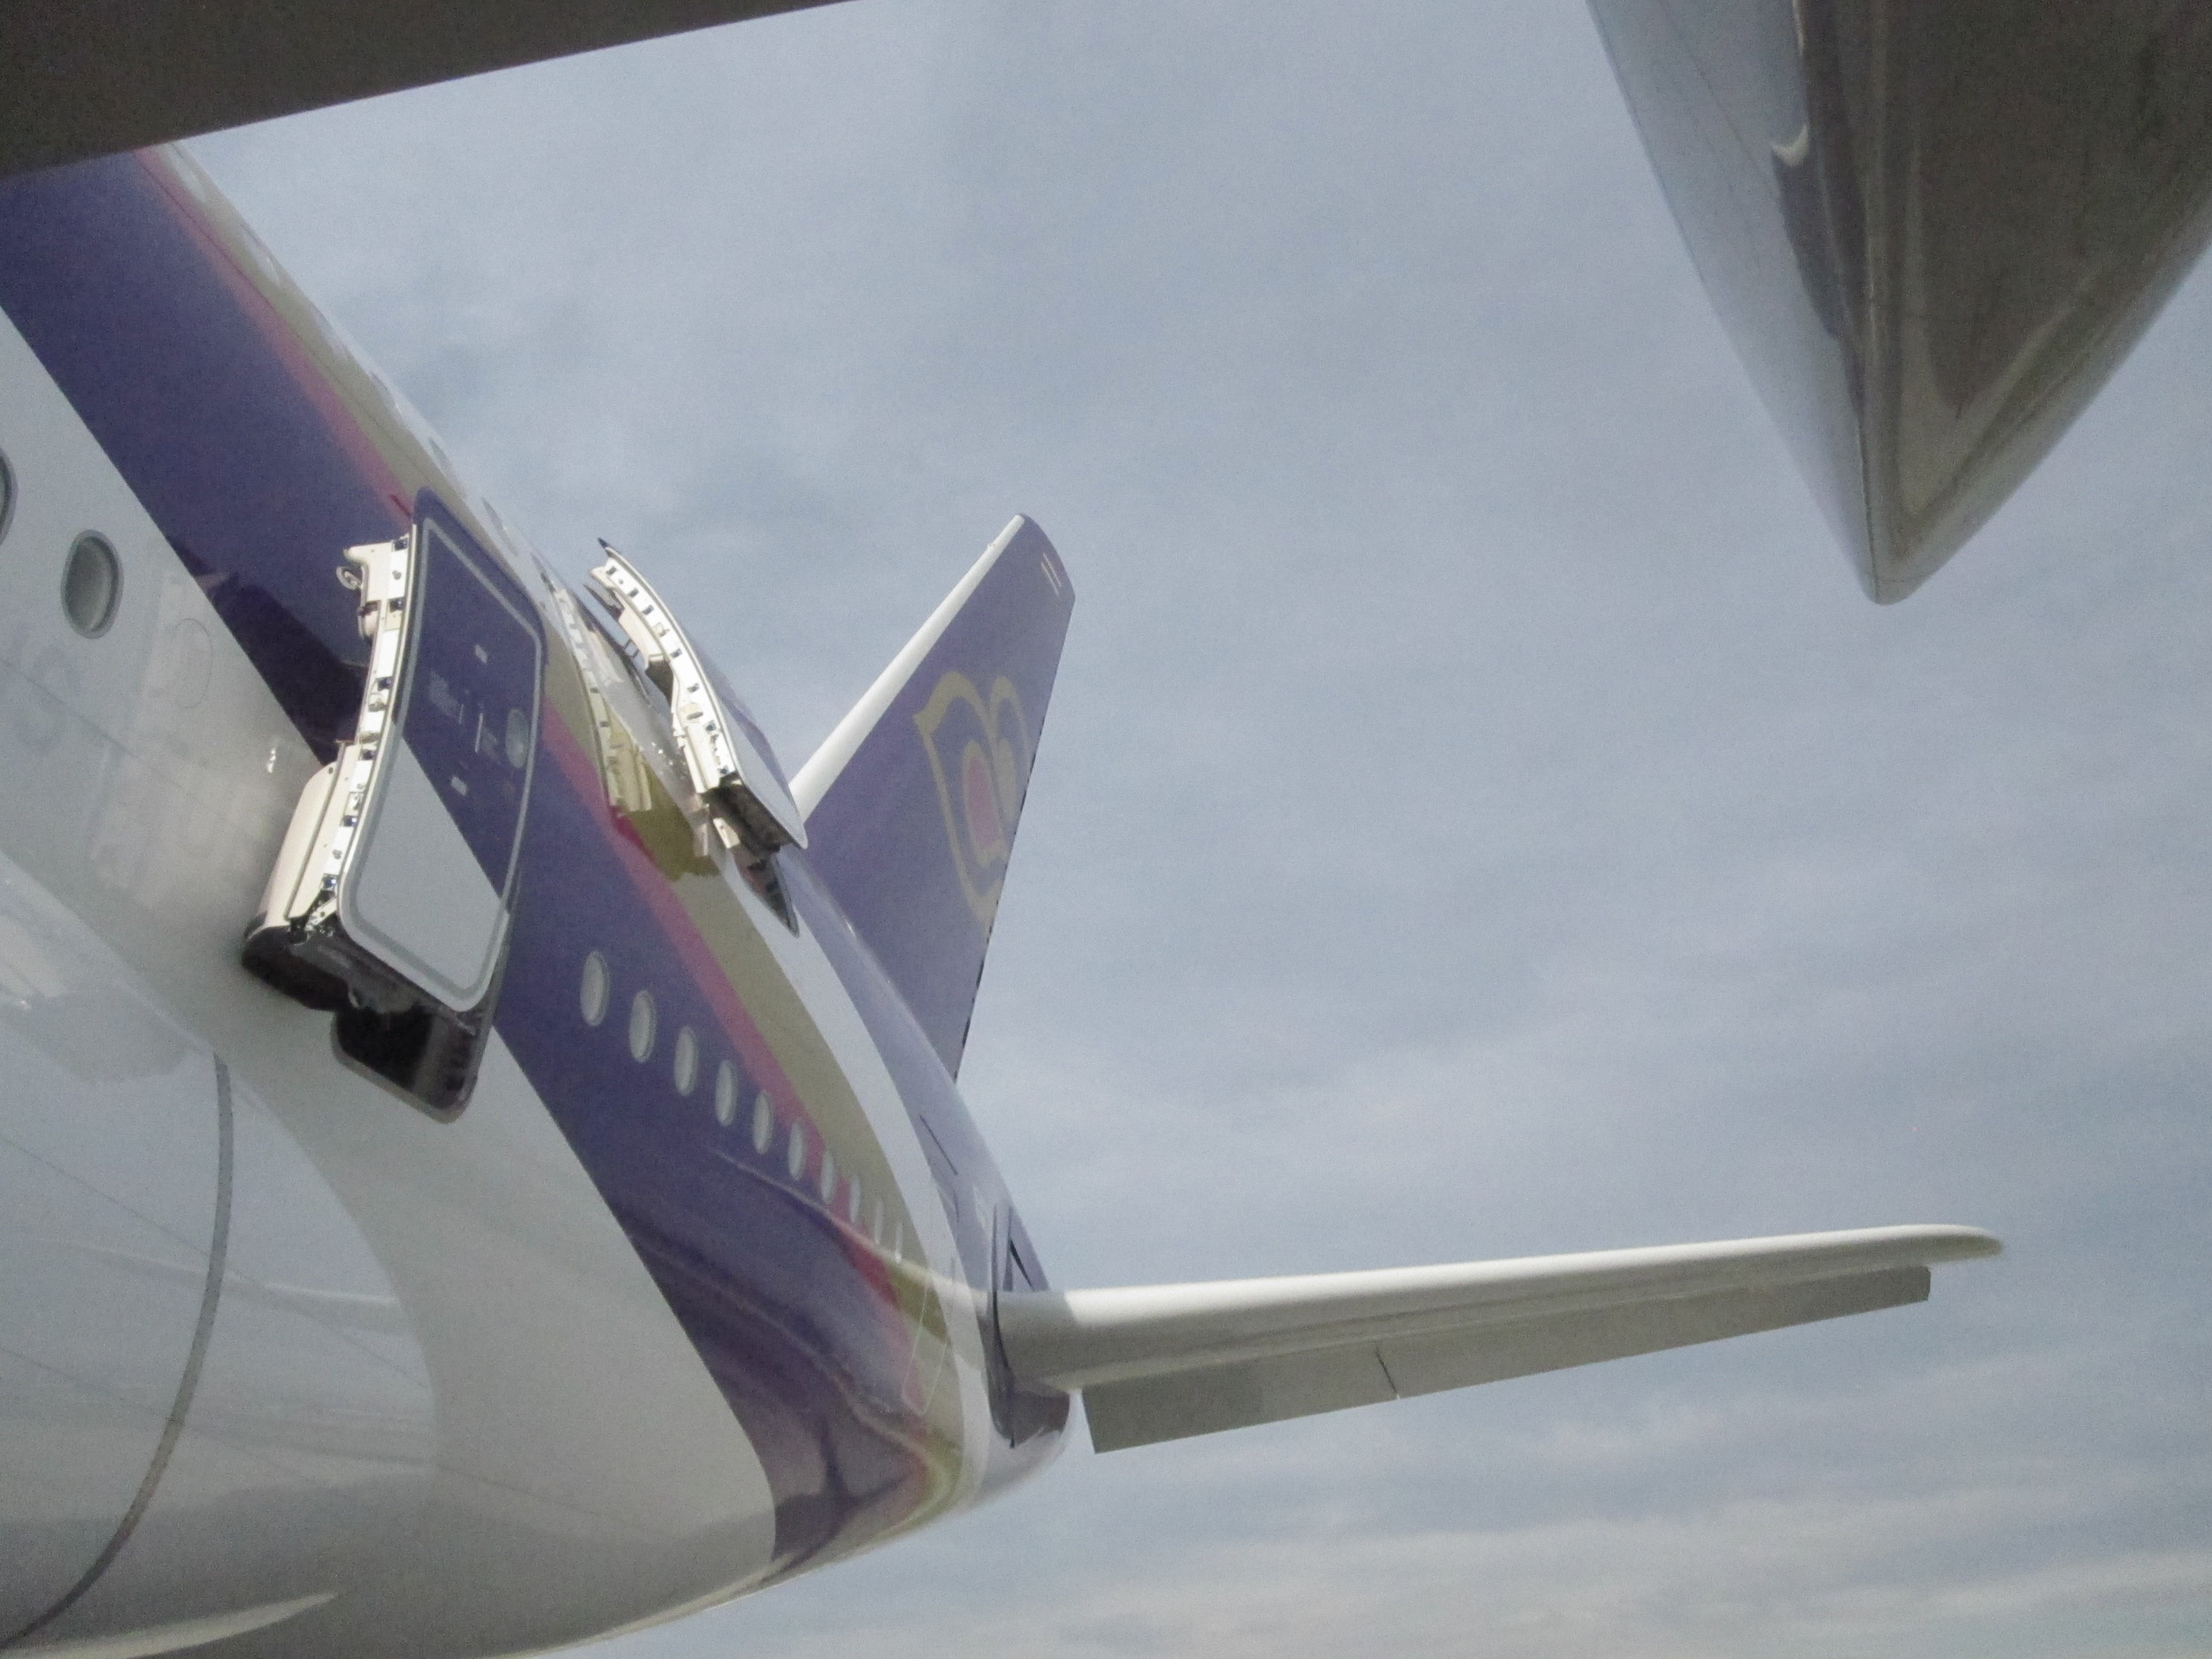 Thai Airways' logo from an unusual angle